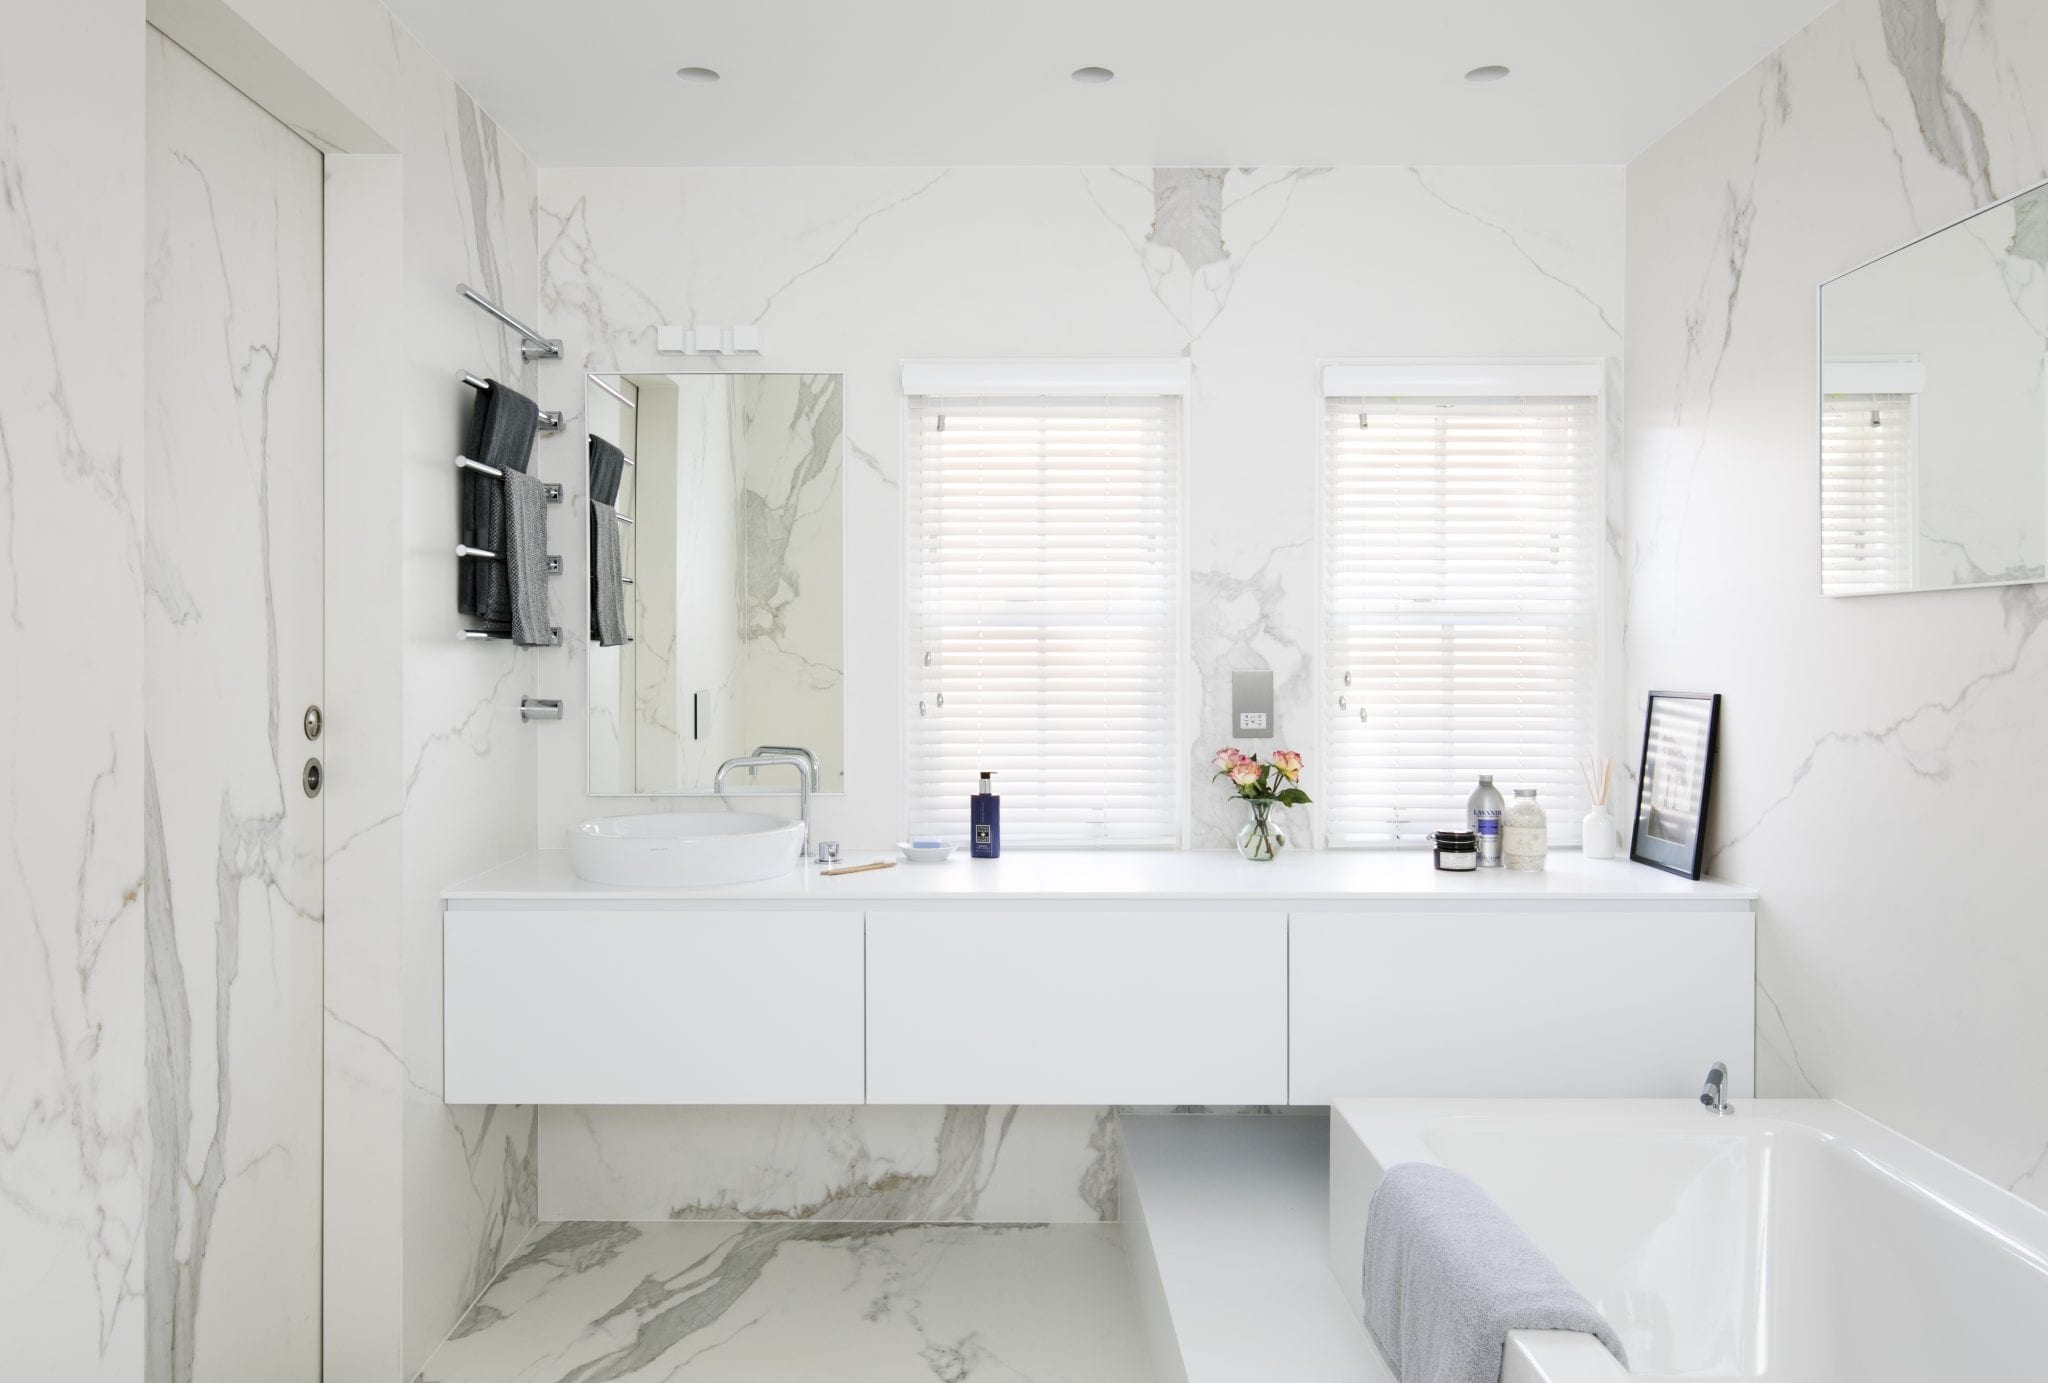 Bathrooms - Amberth - Bathroom Design and Installation London